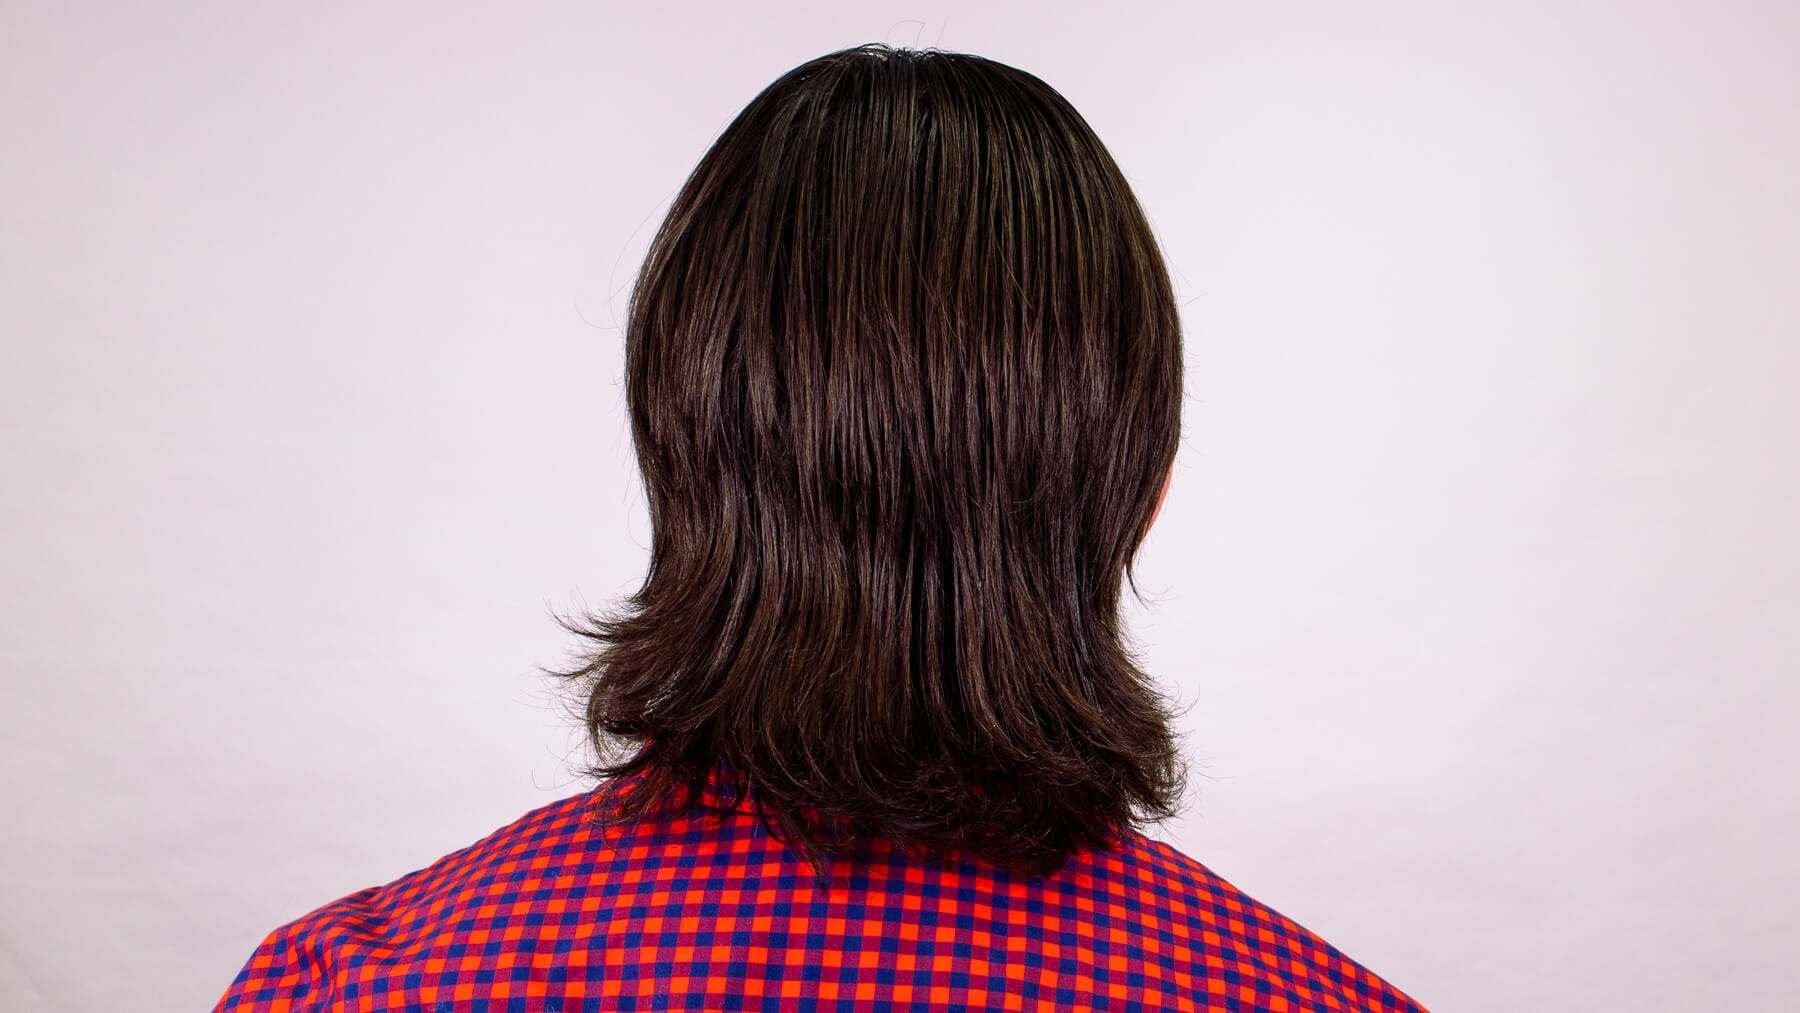 Middle part awkward stage hairstyle back view